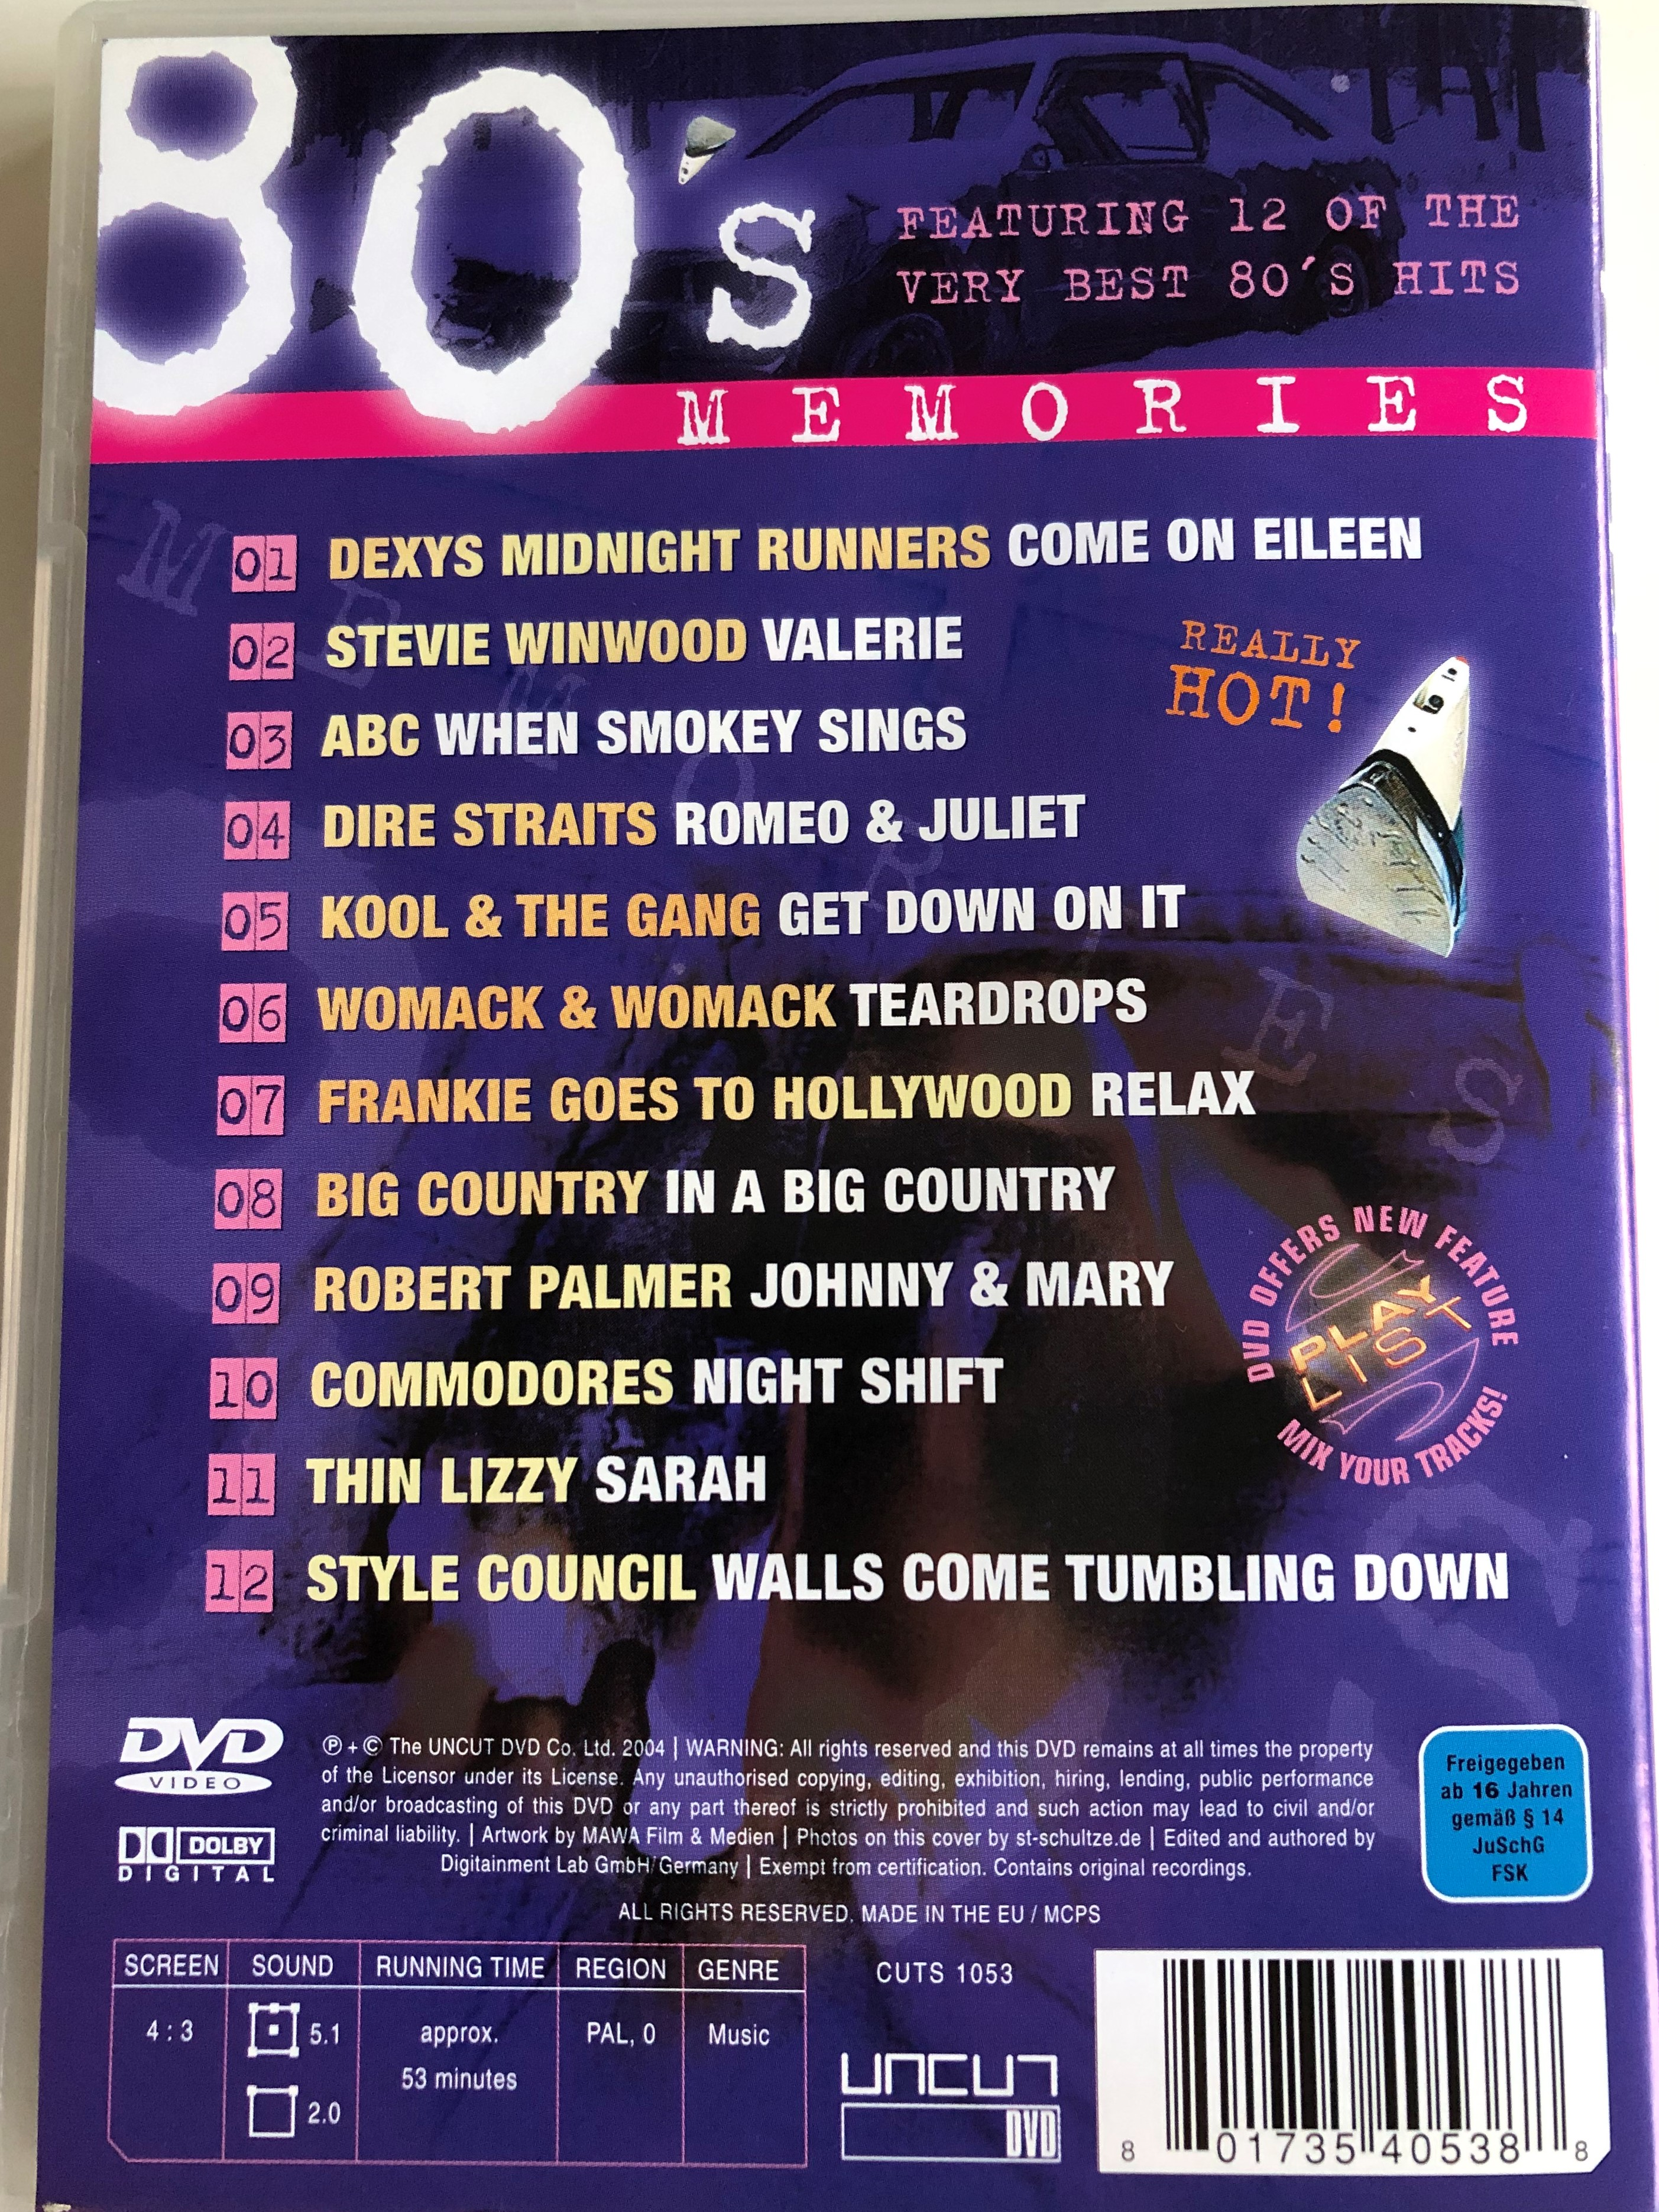 80-s-memories-dvd-featuring-12-of-the-very-best-80-s-hits-2.jpg